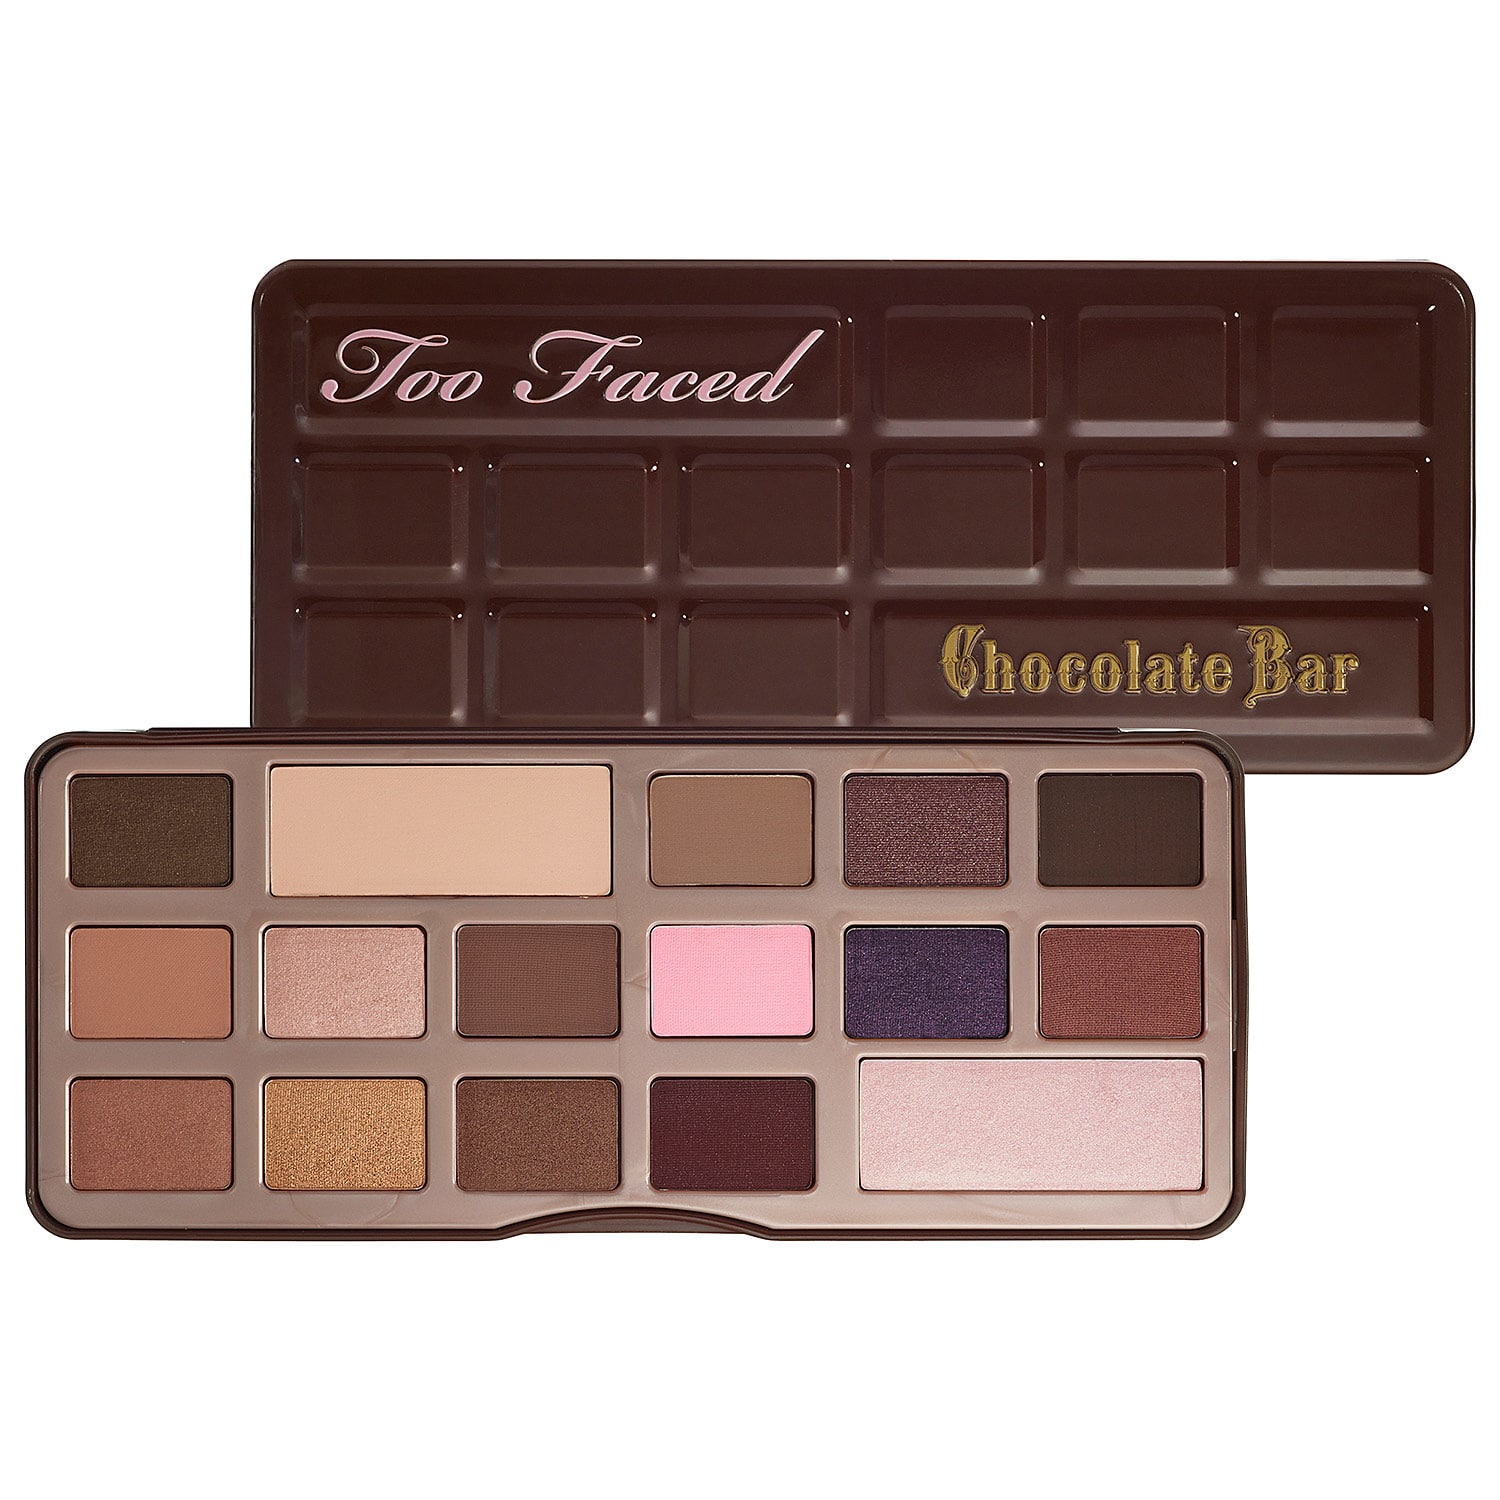 The Chocolate Bar Eyeshadow Palette